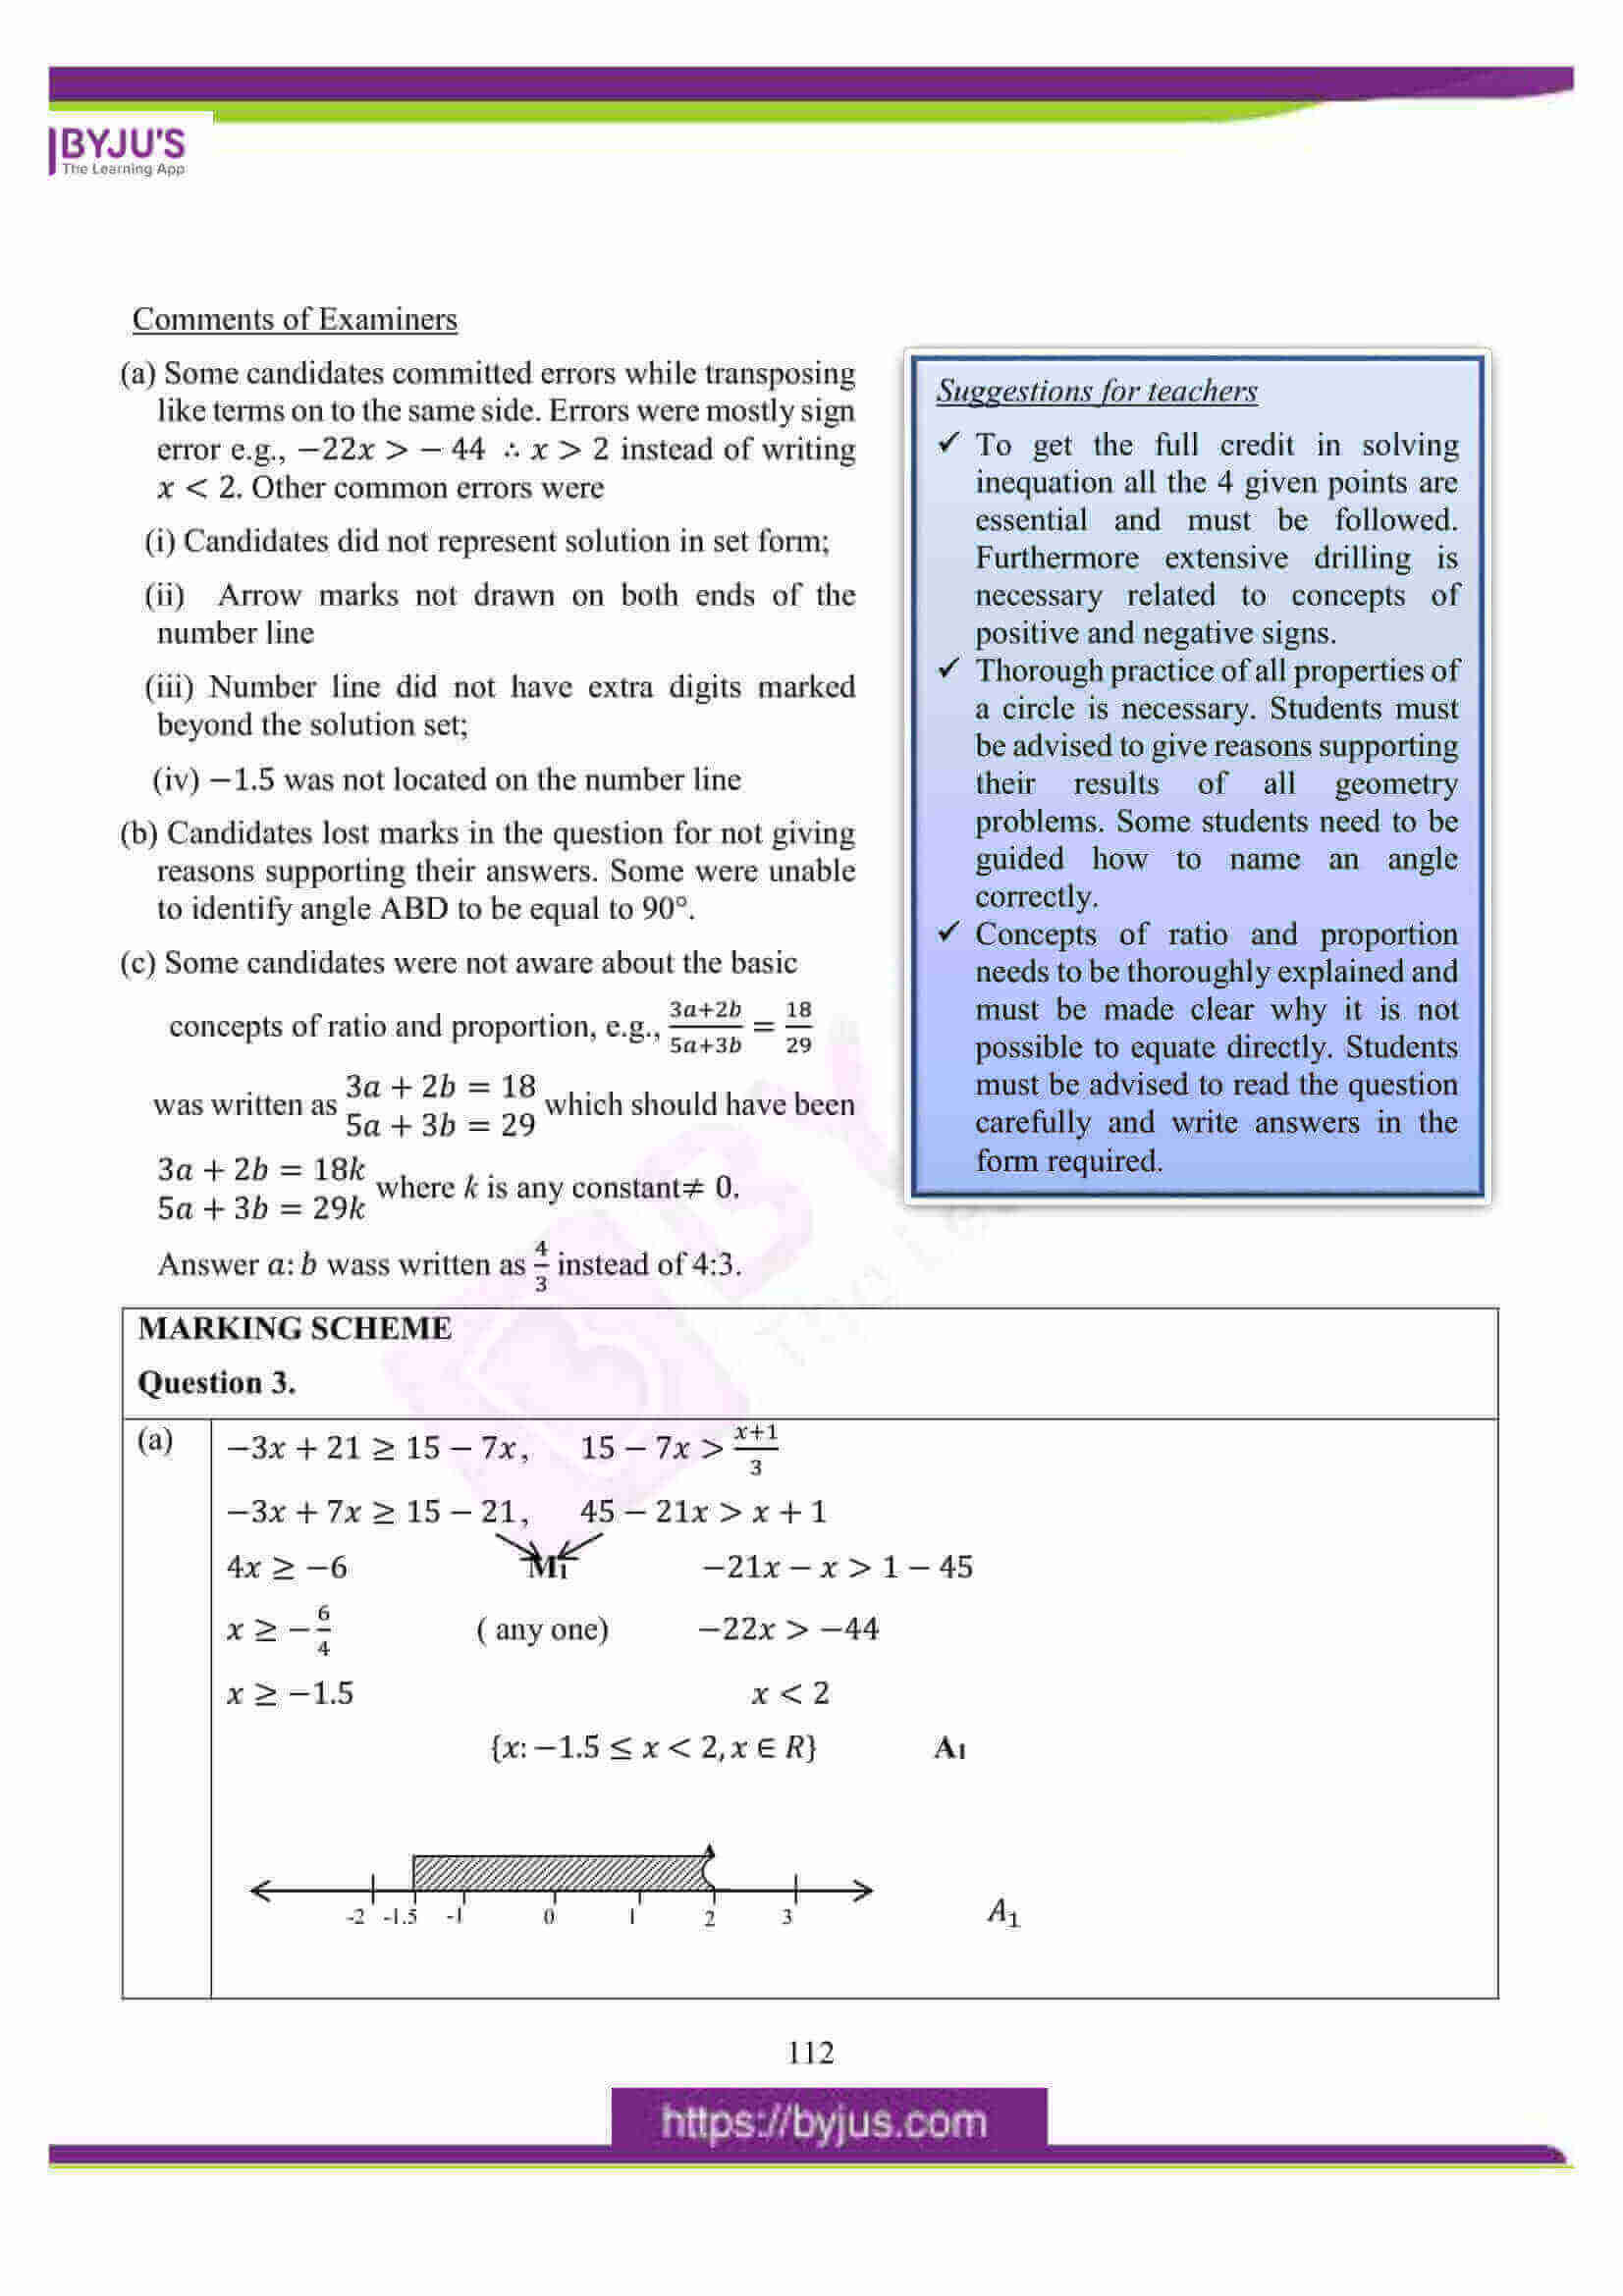 icse class 10 maths question paper solution 2016 06